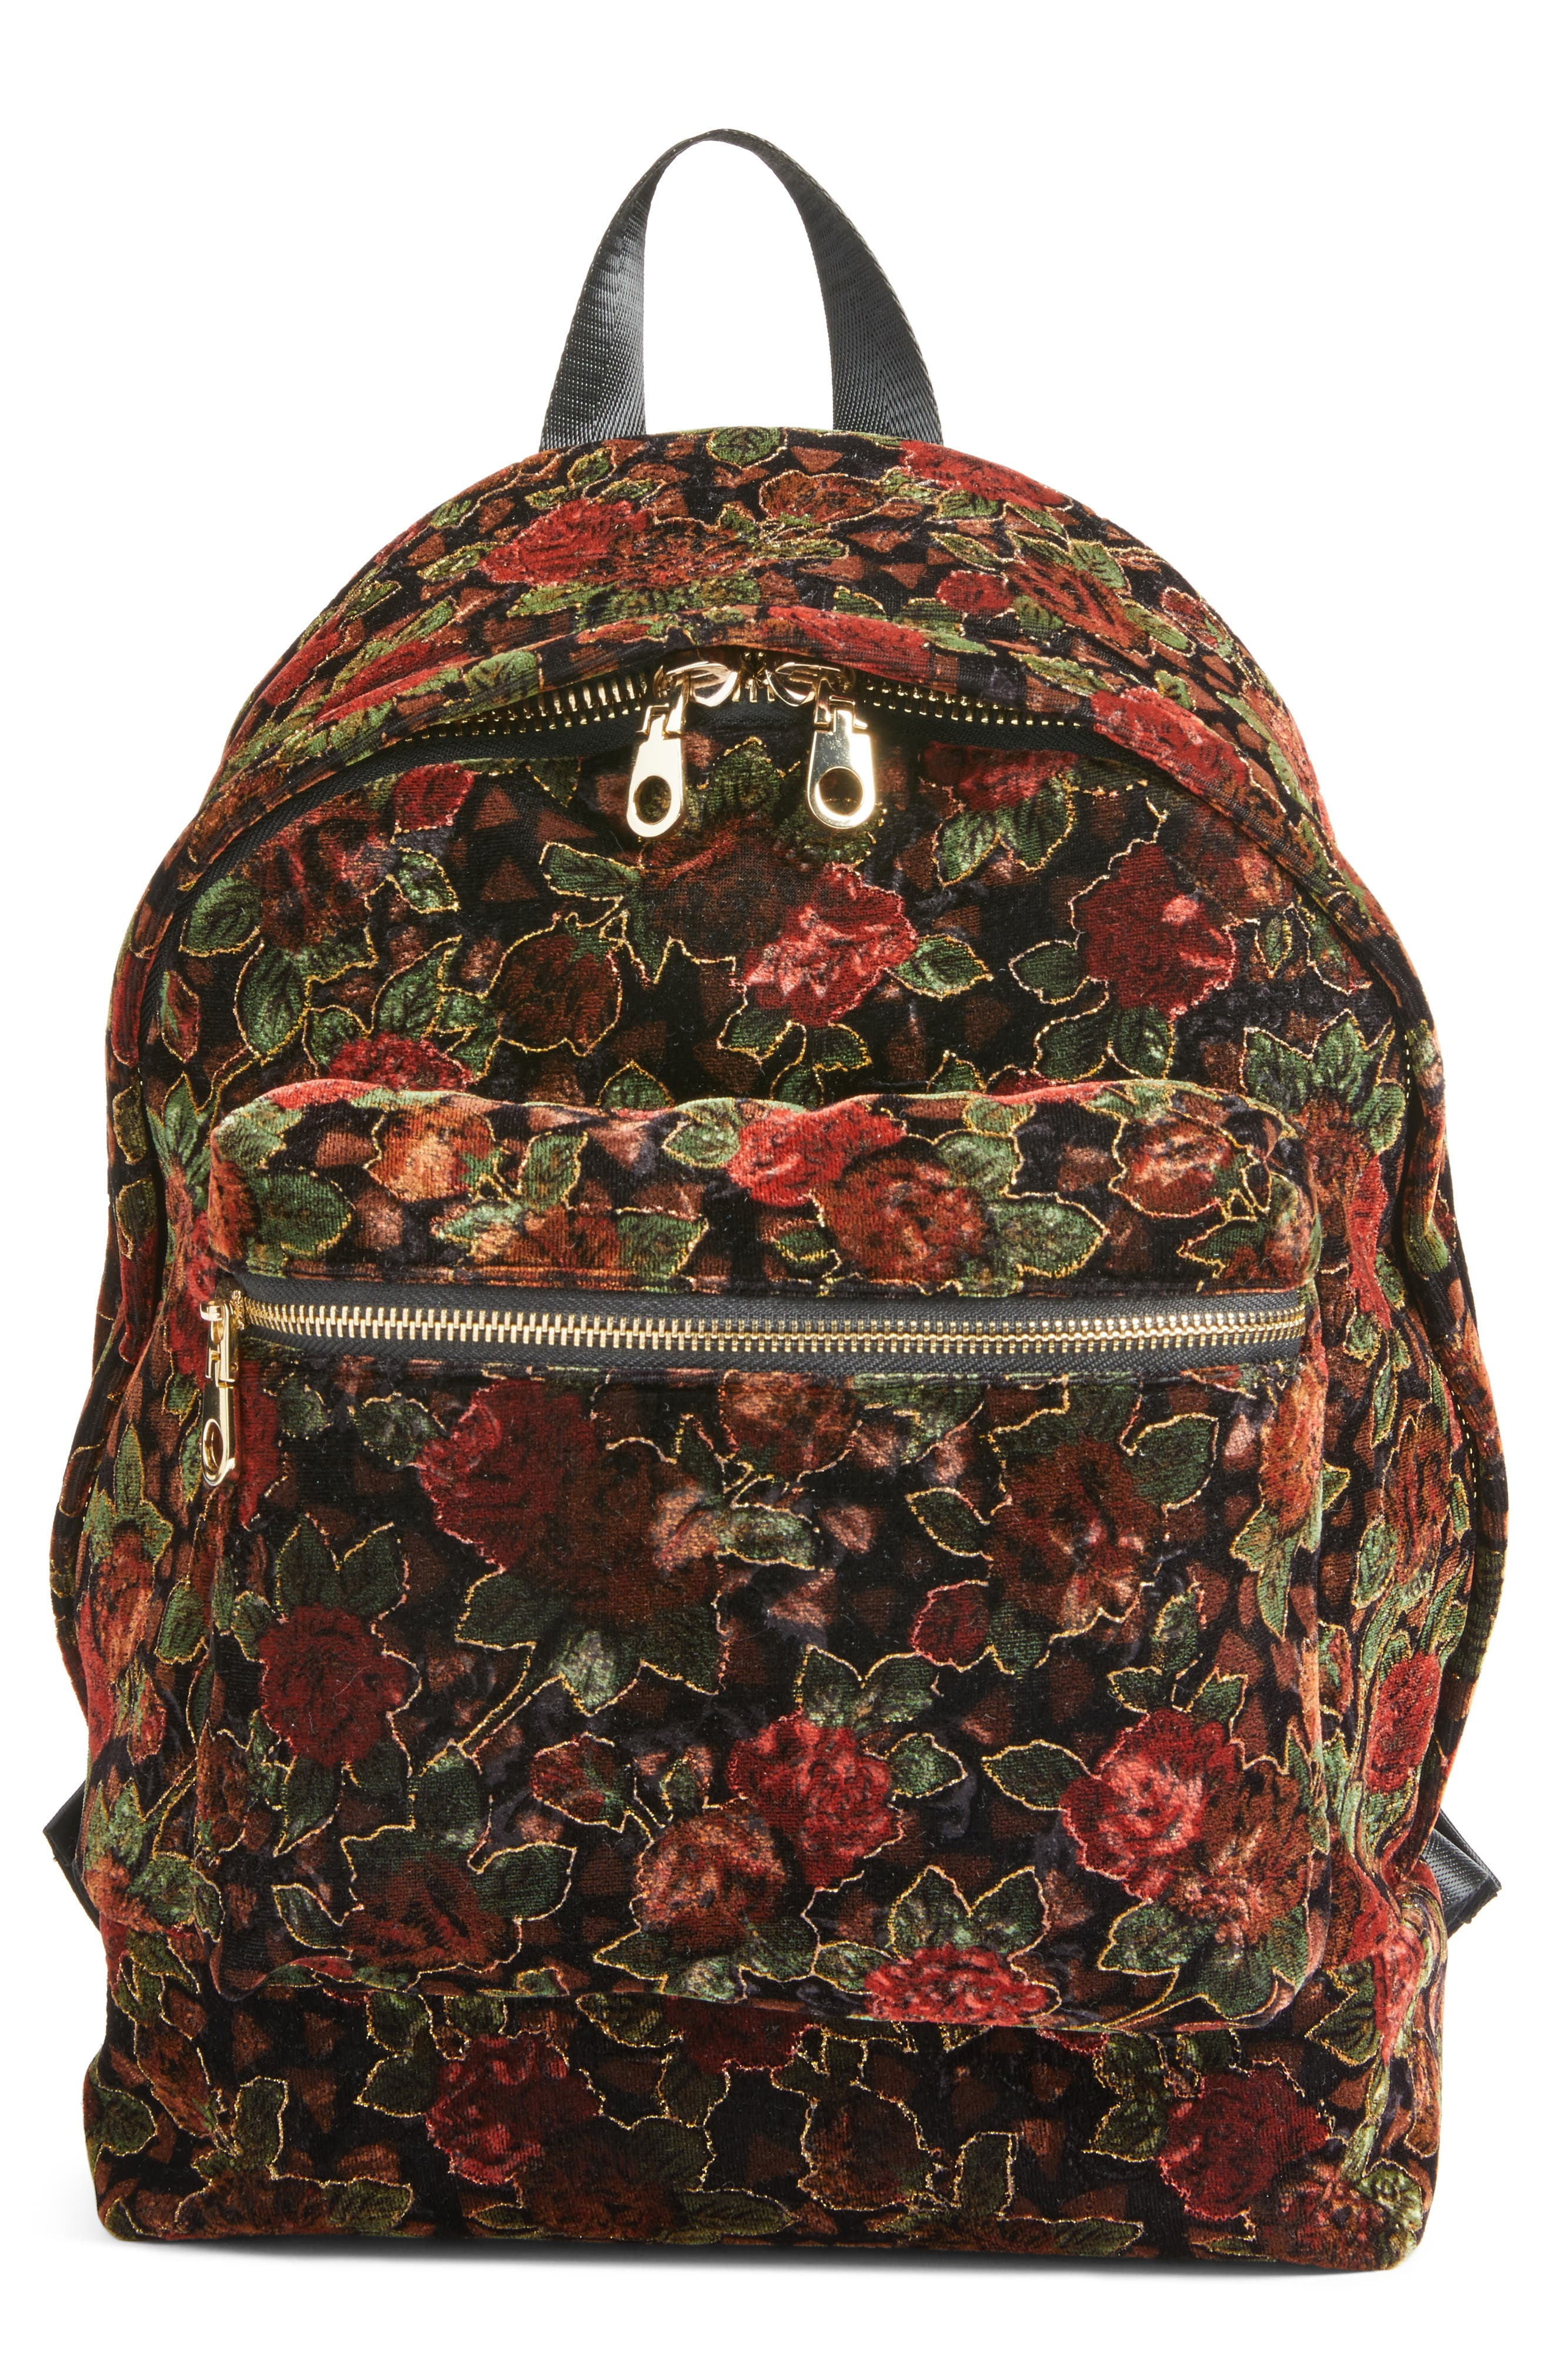 Chelsea28 Floral Velvet Backpack